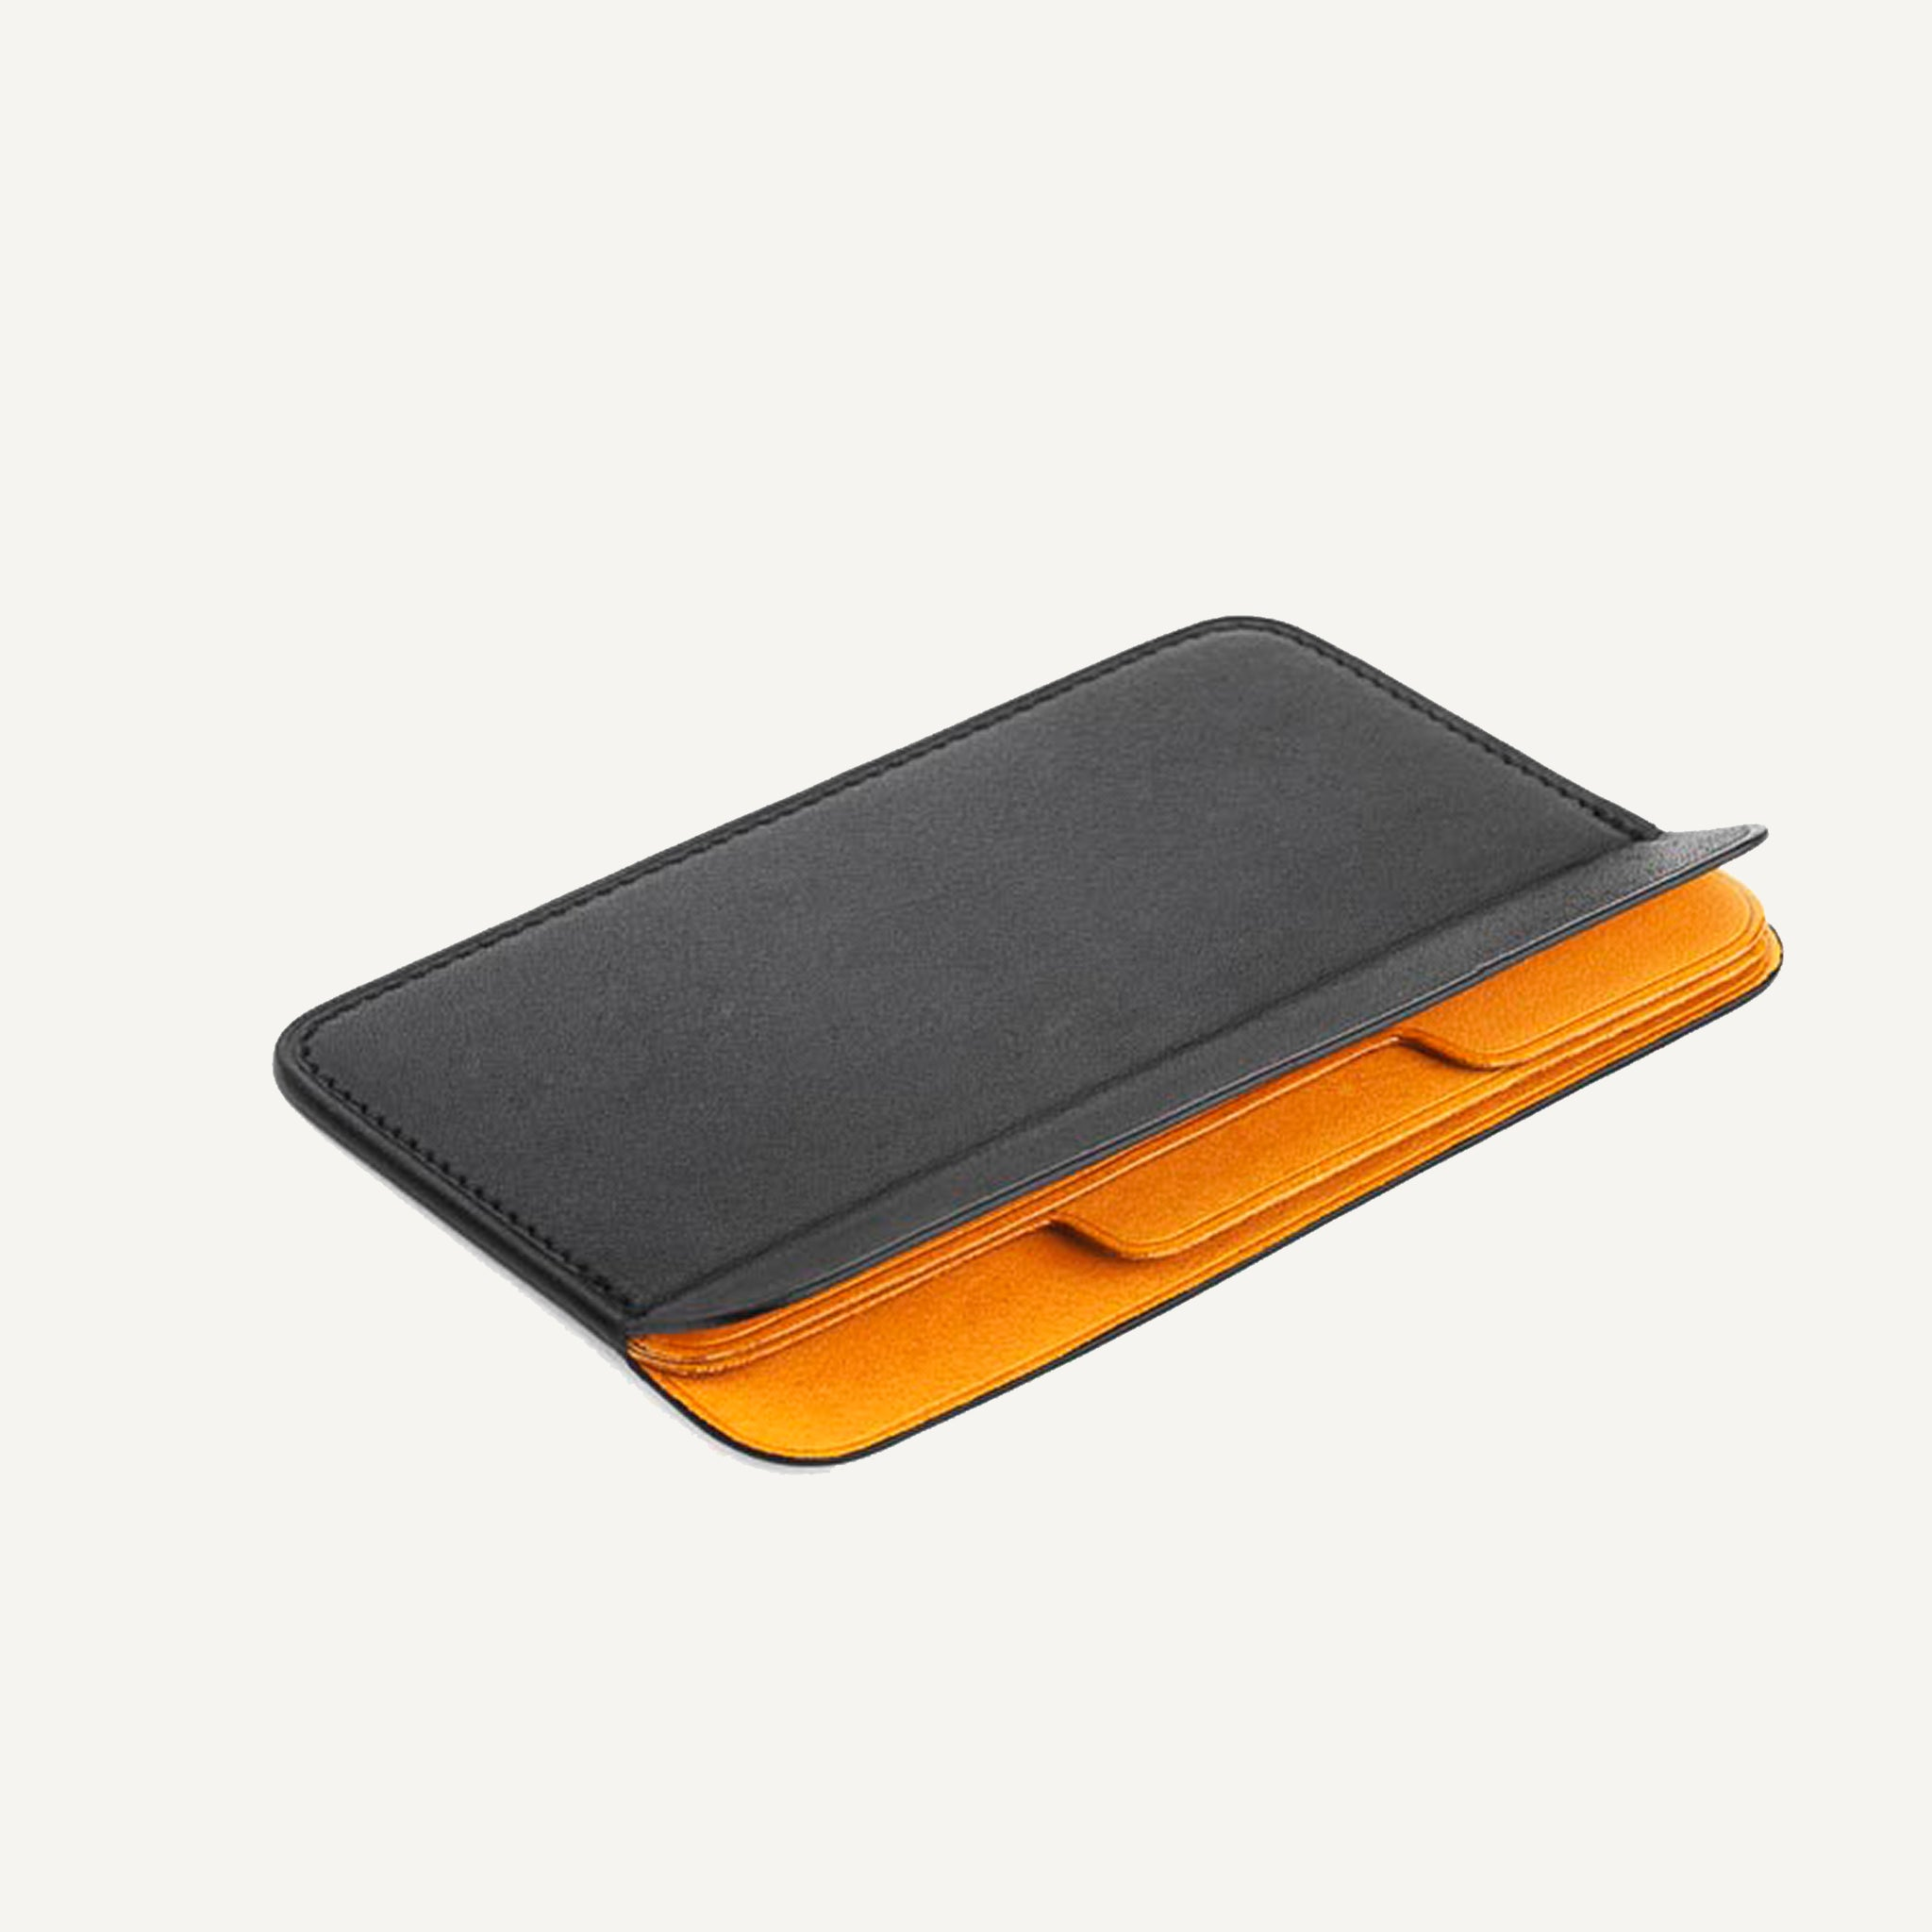 ISAAC REINA CLASSIFY CARD HOLDER